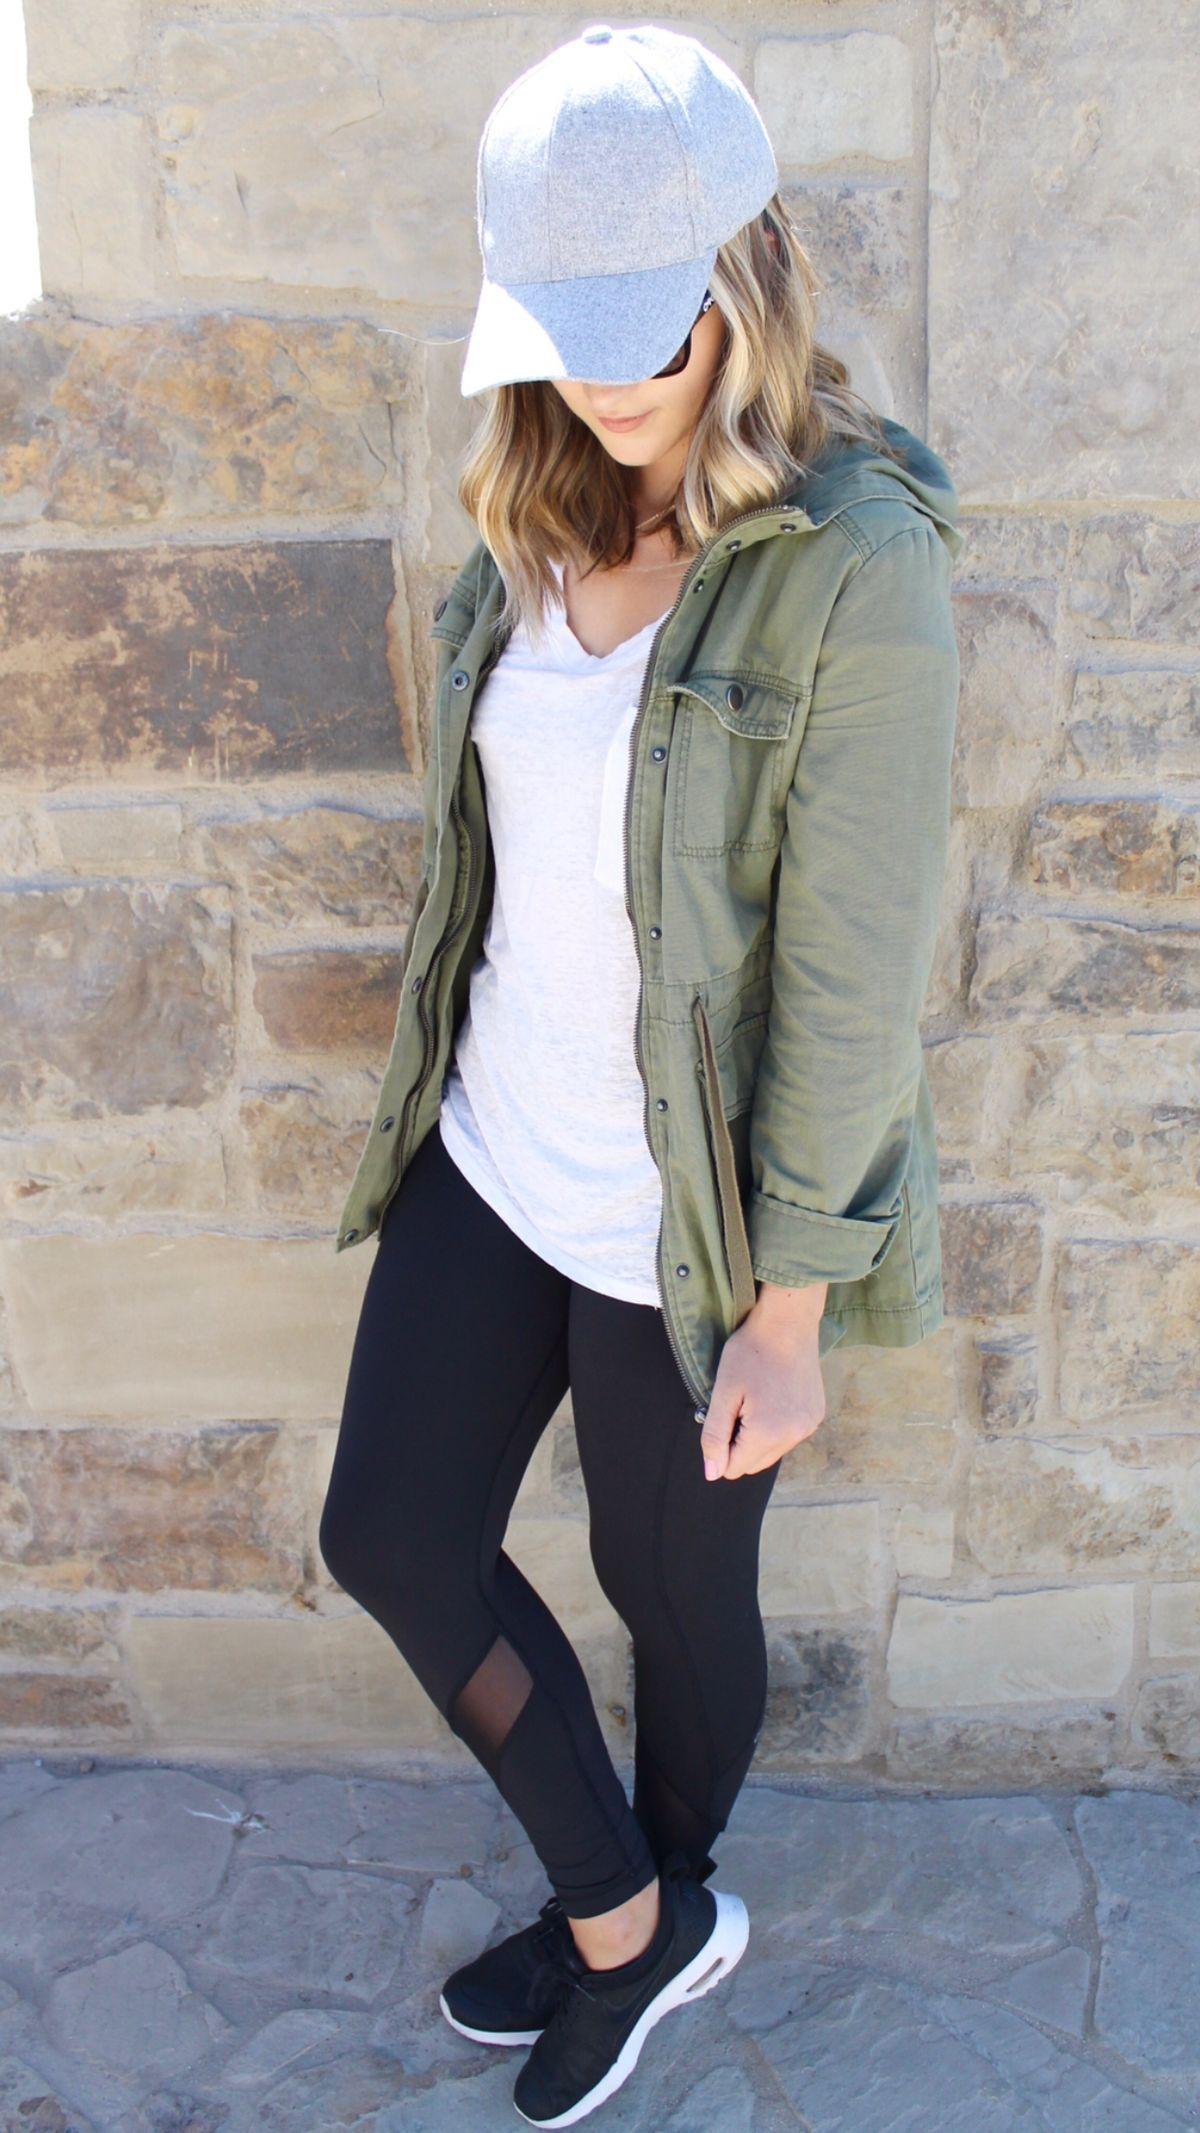 10 Best Casual College Outfits You Can Totally Copy | College Clothes And Fall Winter